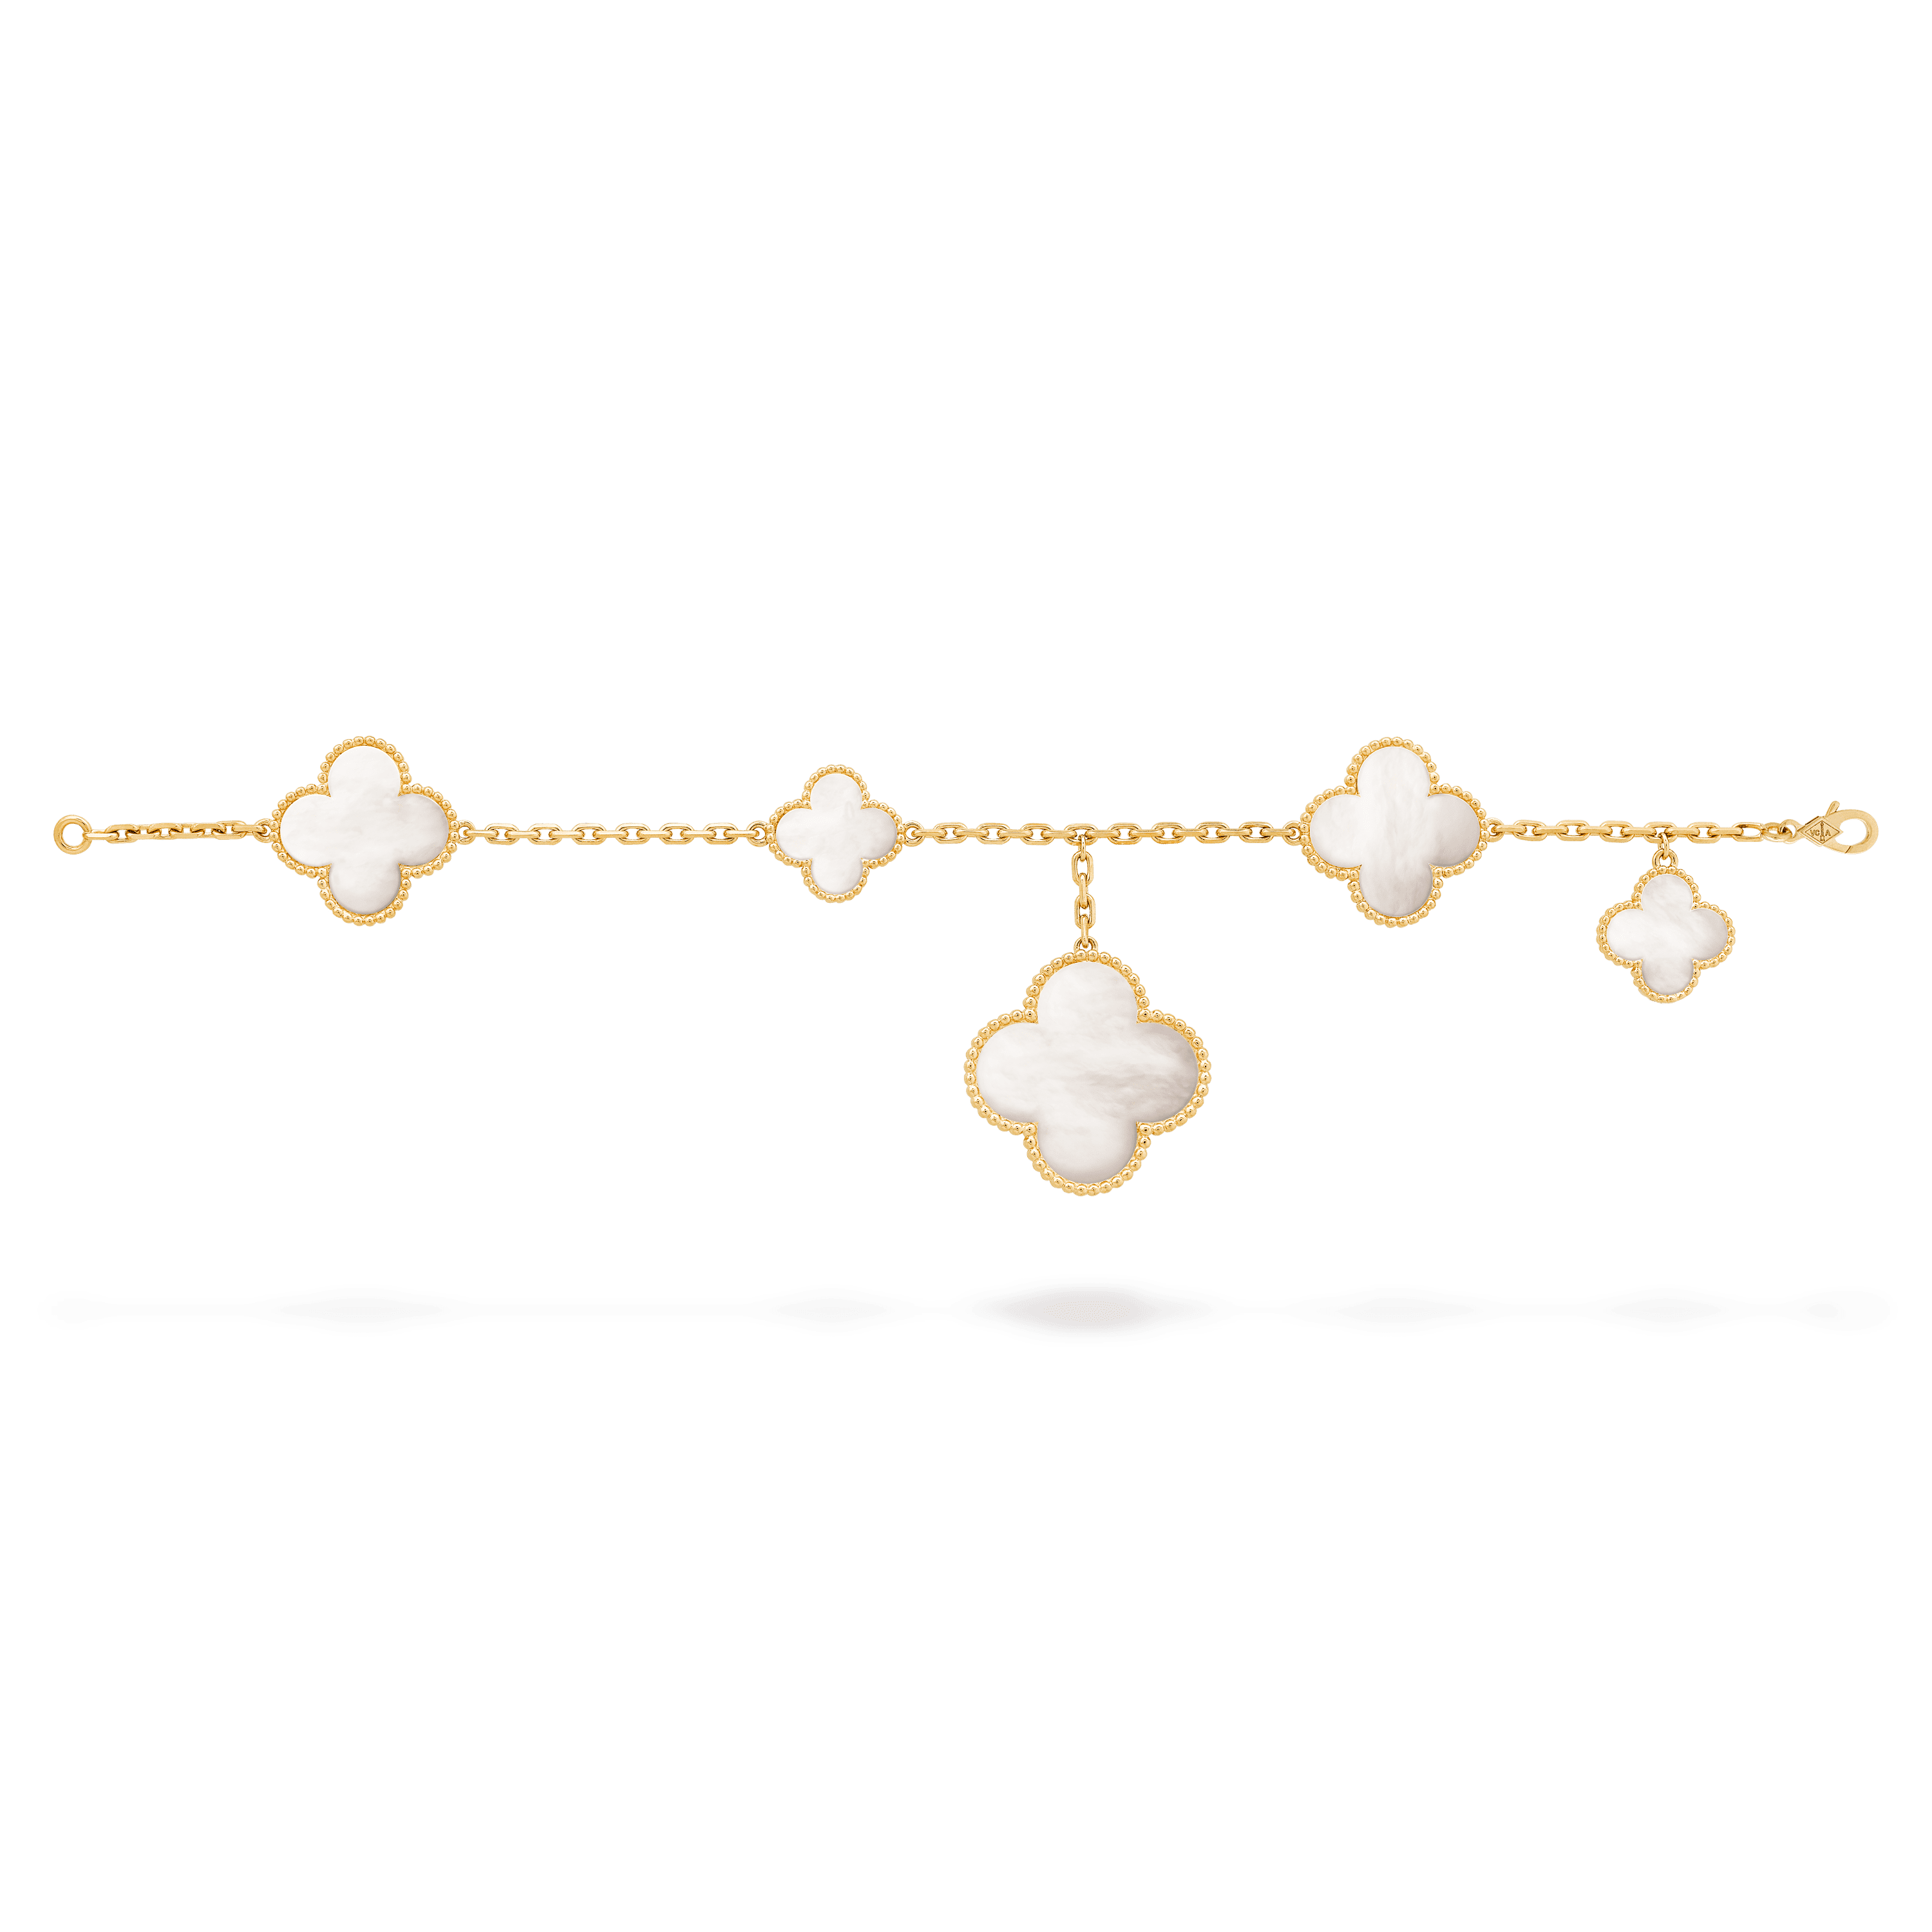 Magic Alhambra bracelet, 5 motifs, - Open View - VCARD78600 - Van Cleef & Arpels